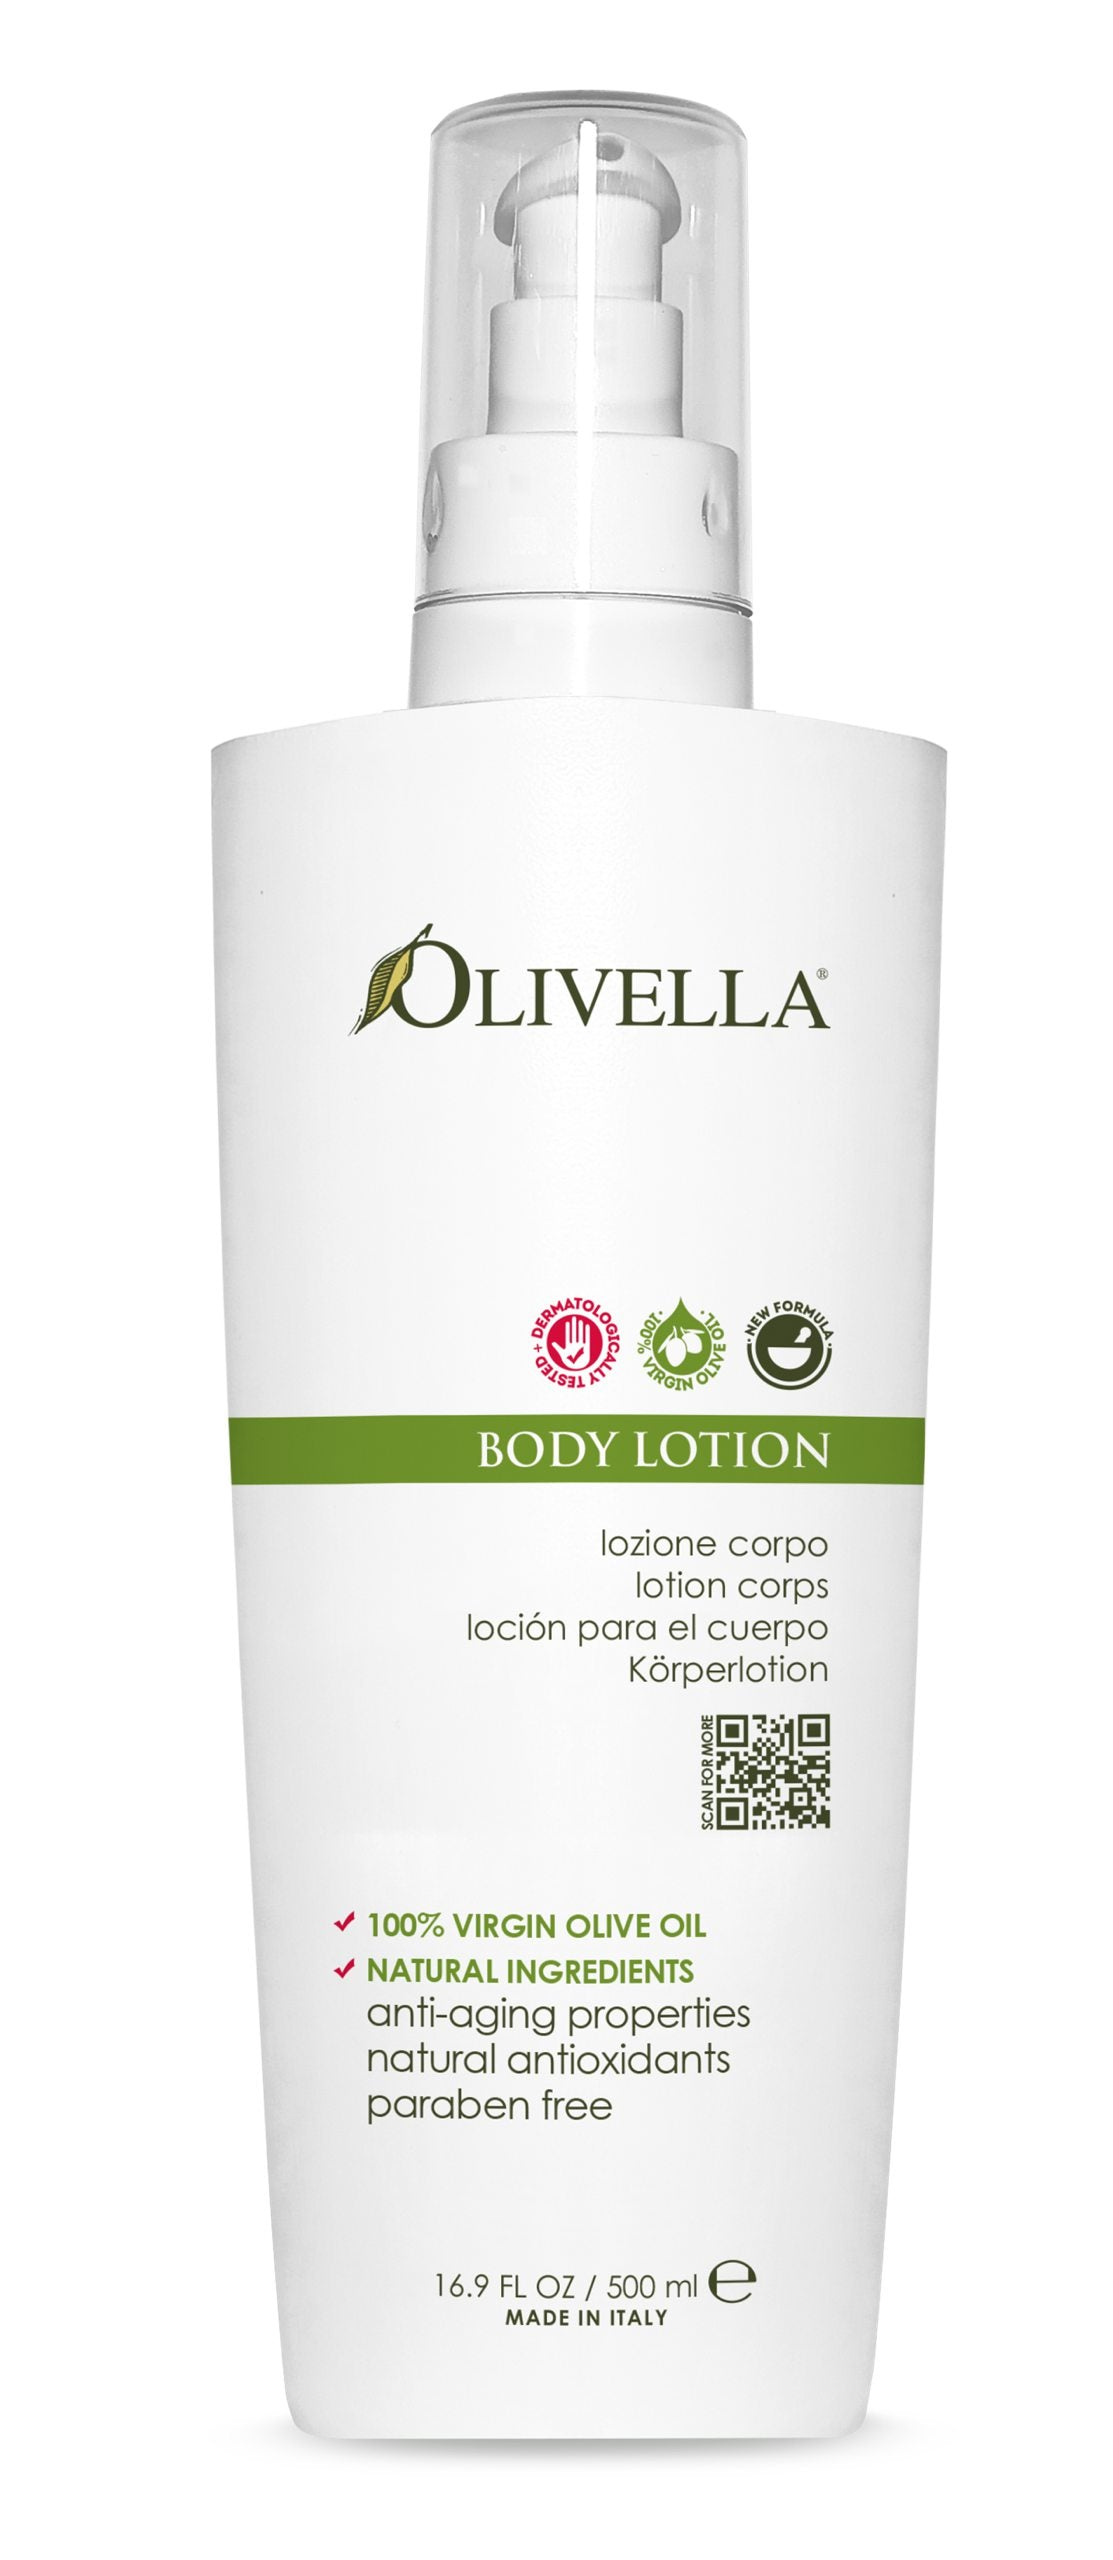 Olivella Body Lotion Pump 16.9 Oz - Olivella Official Store